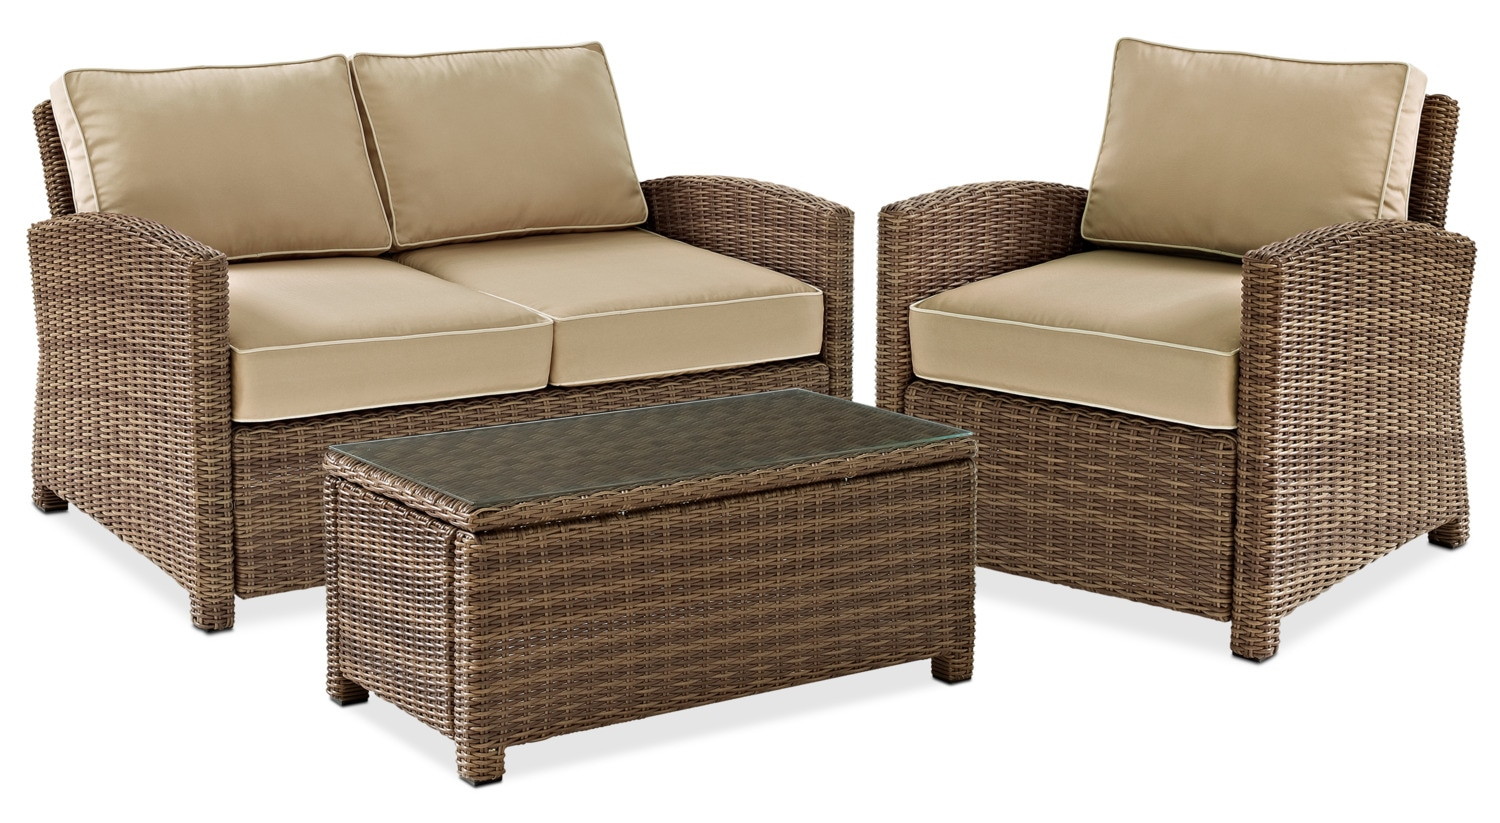 Destin Outdoor Loveseat Chair And Coffee Table Set Value City intended for 13 Clever Ways How to Build Outdoor Living Room Sets